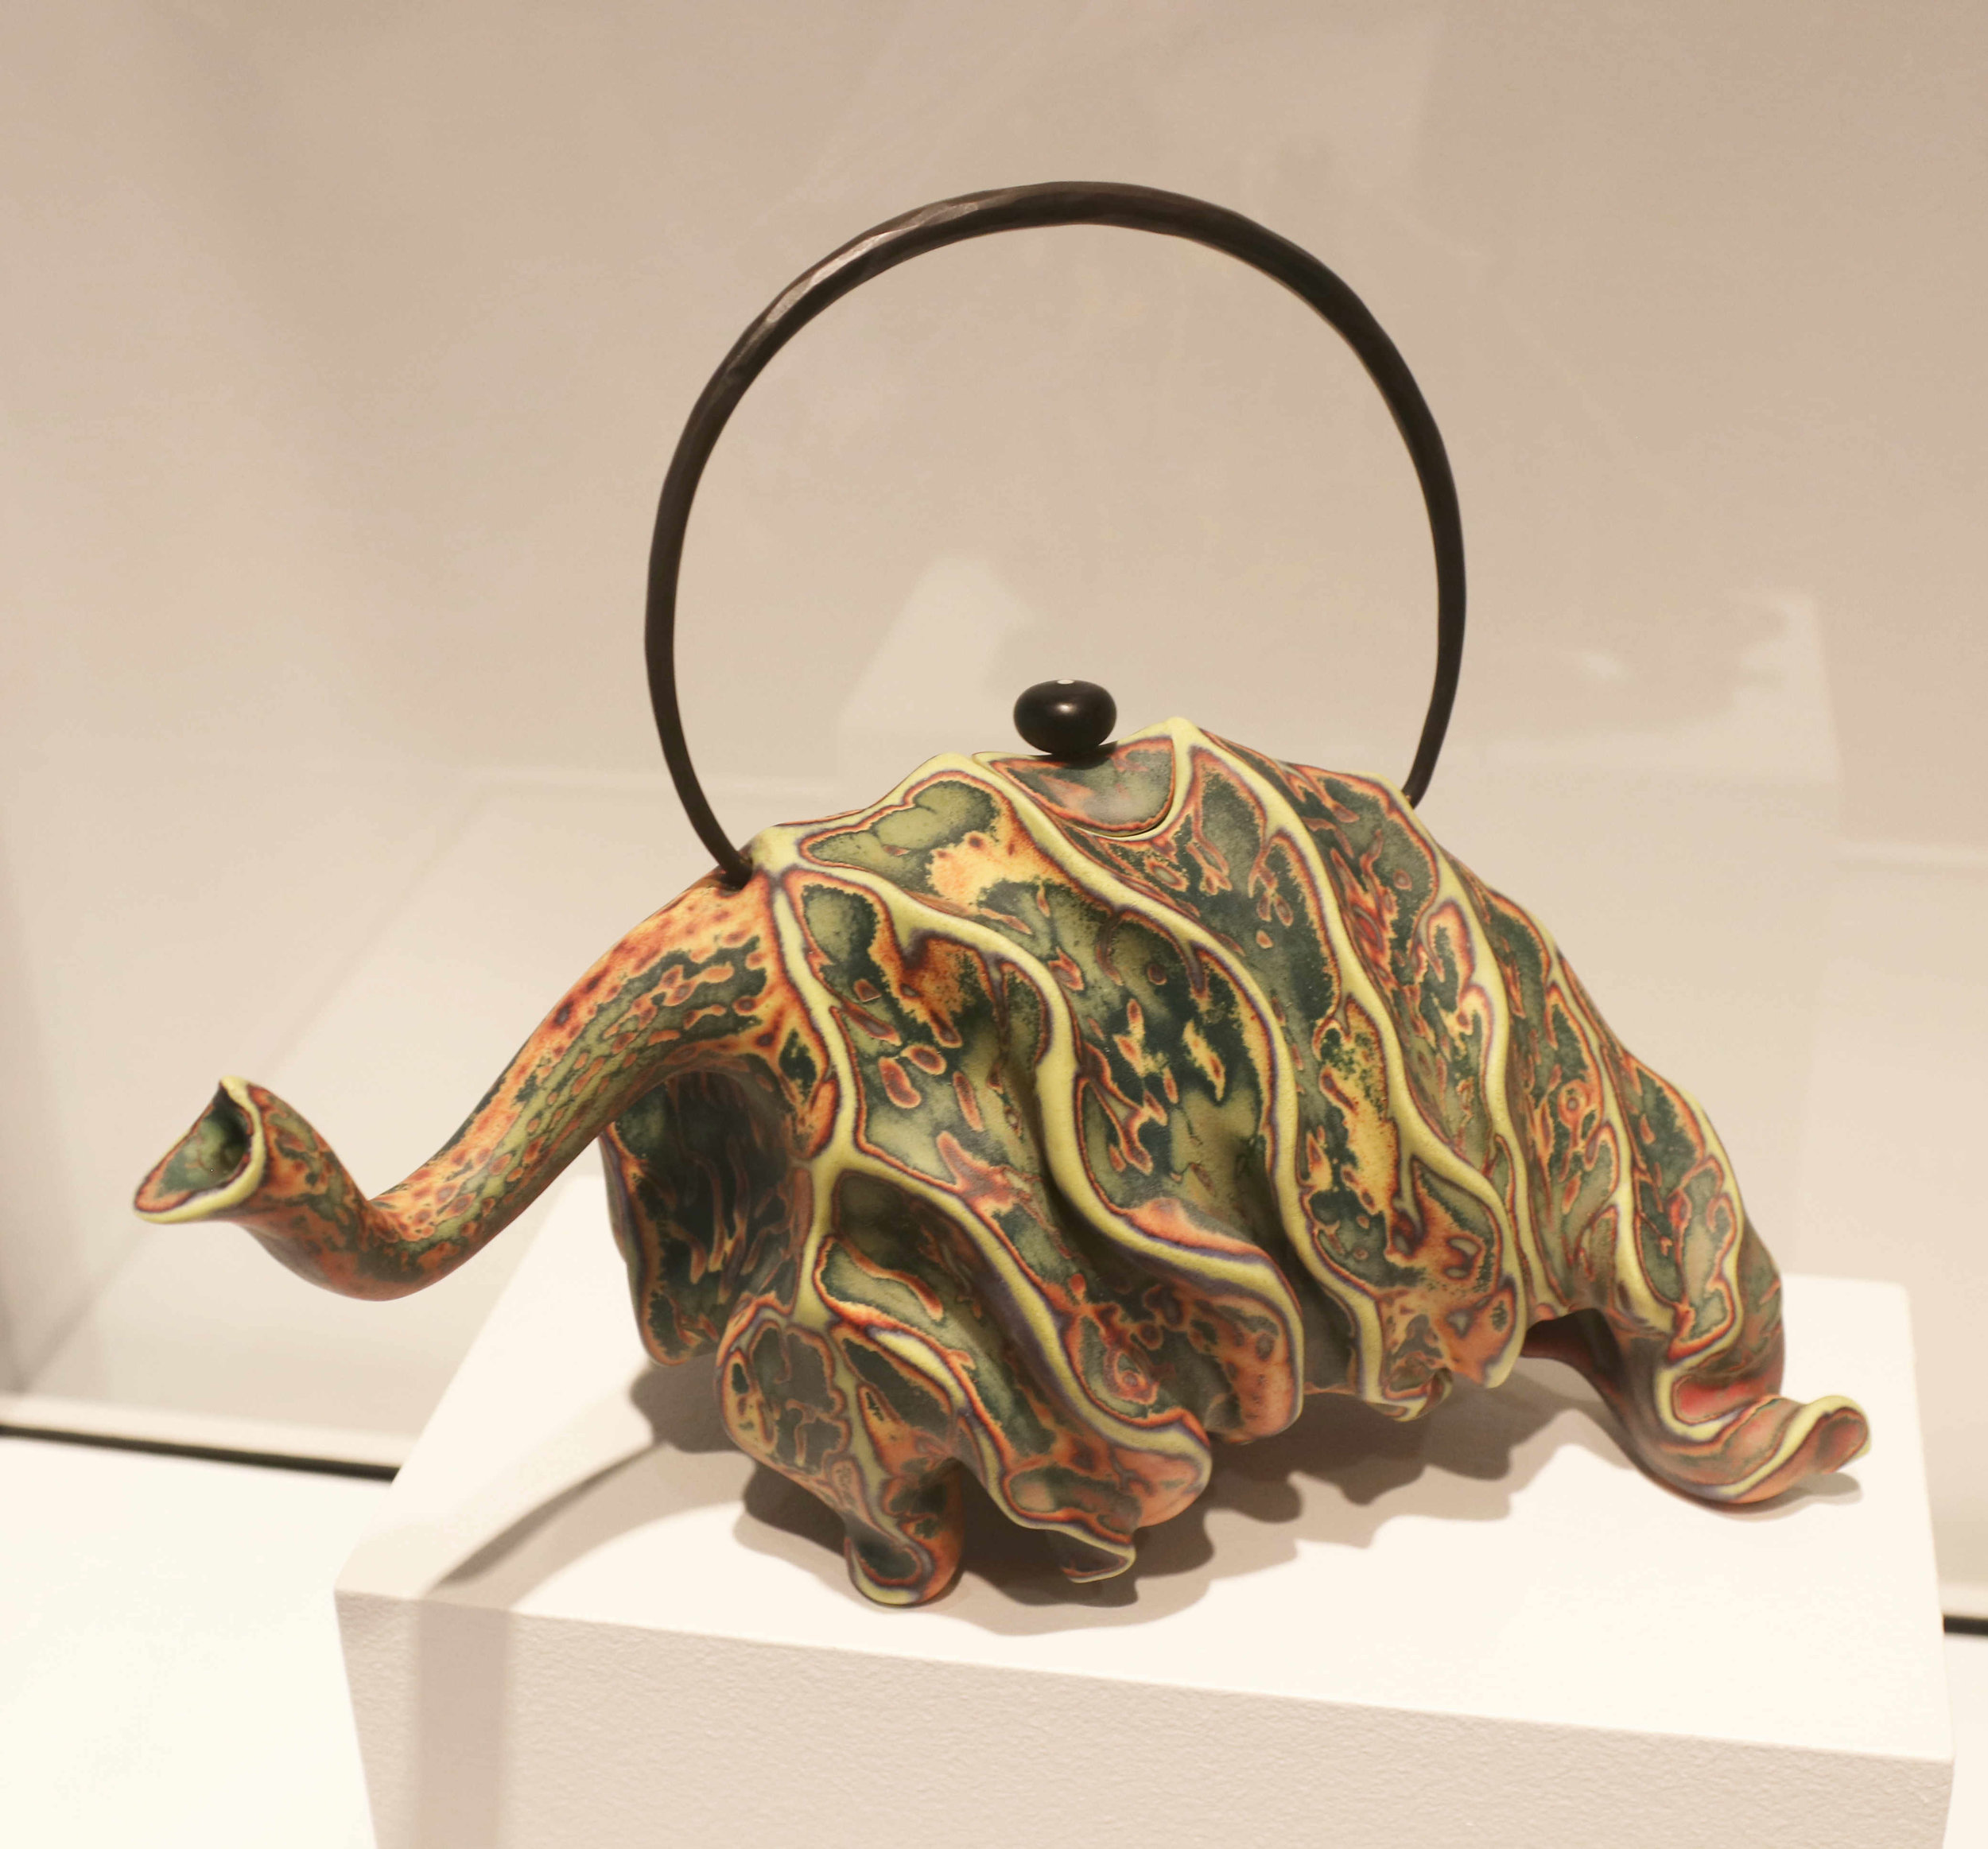 Michael Sherrill, Elephant Tea Leaf, 2005 (looking left). Porcelain, bronze handle and glass finial.